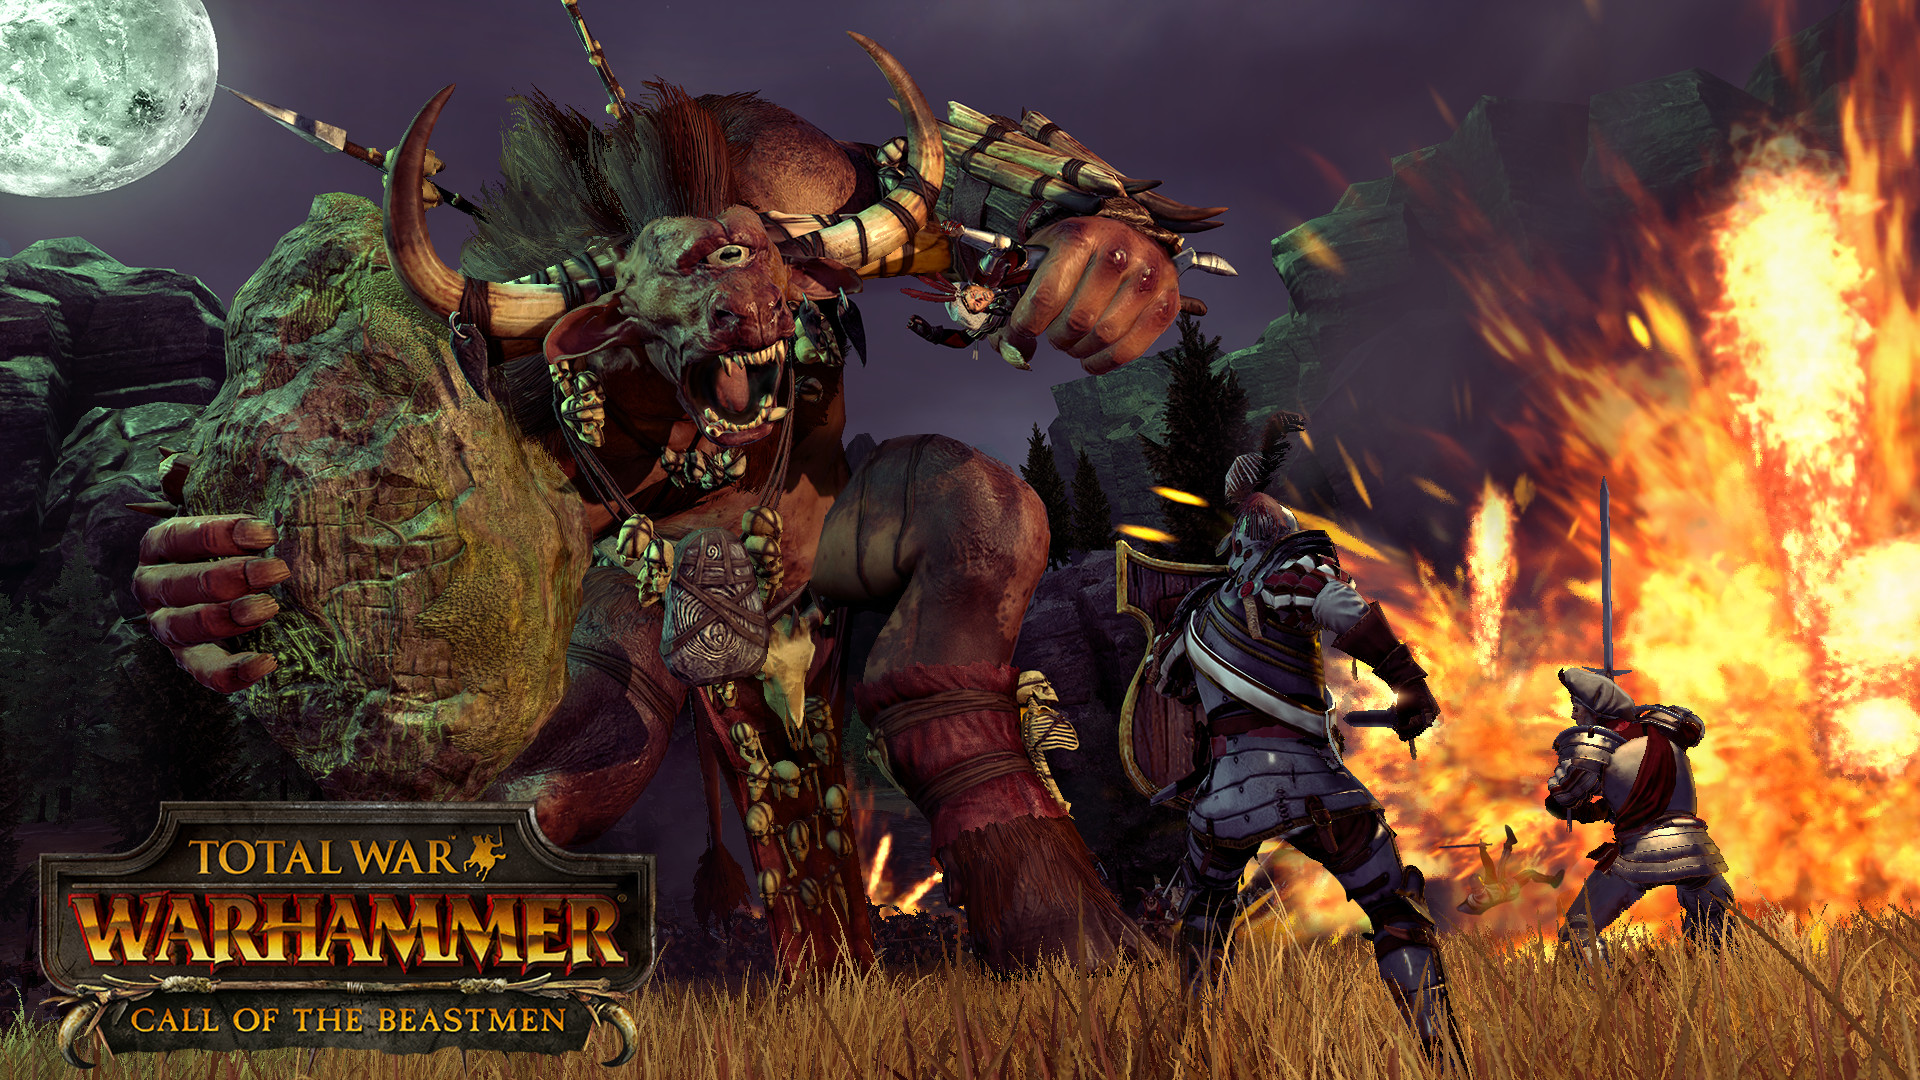 Total War: Warhammer Call of the Beastmen DLC (Steam)